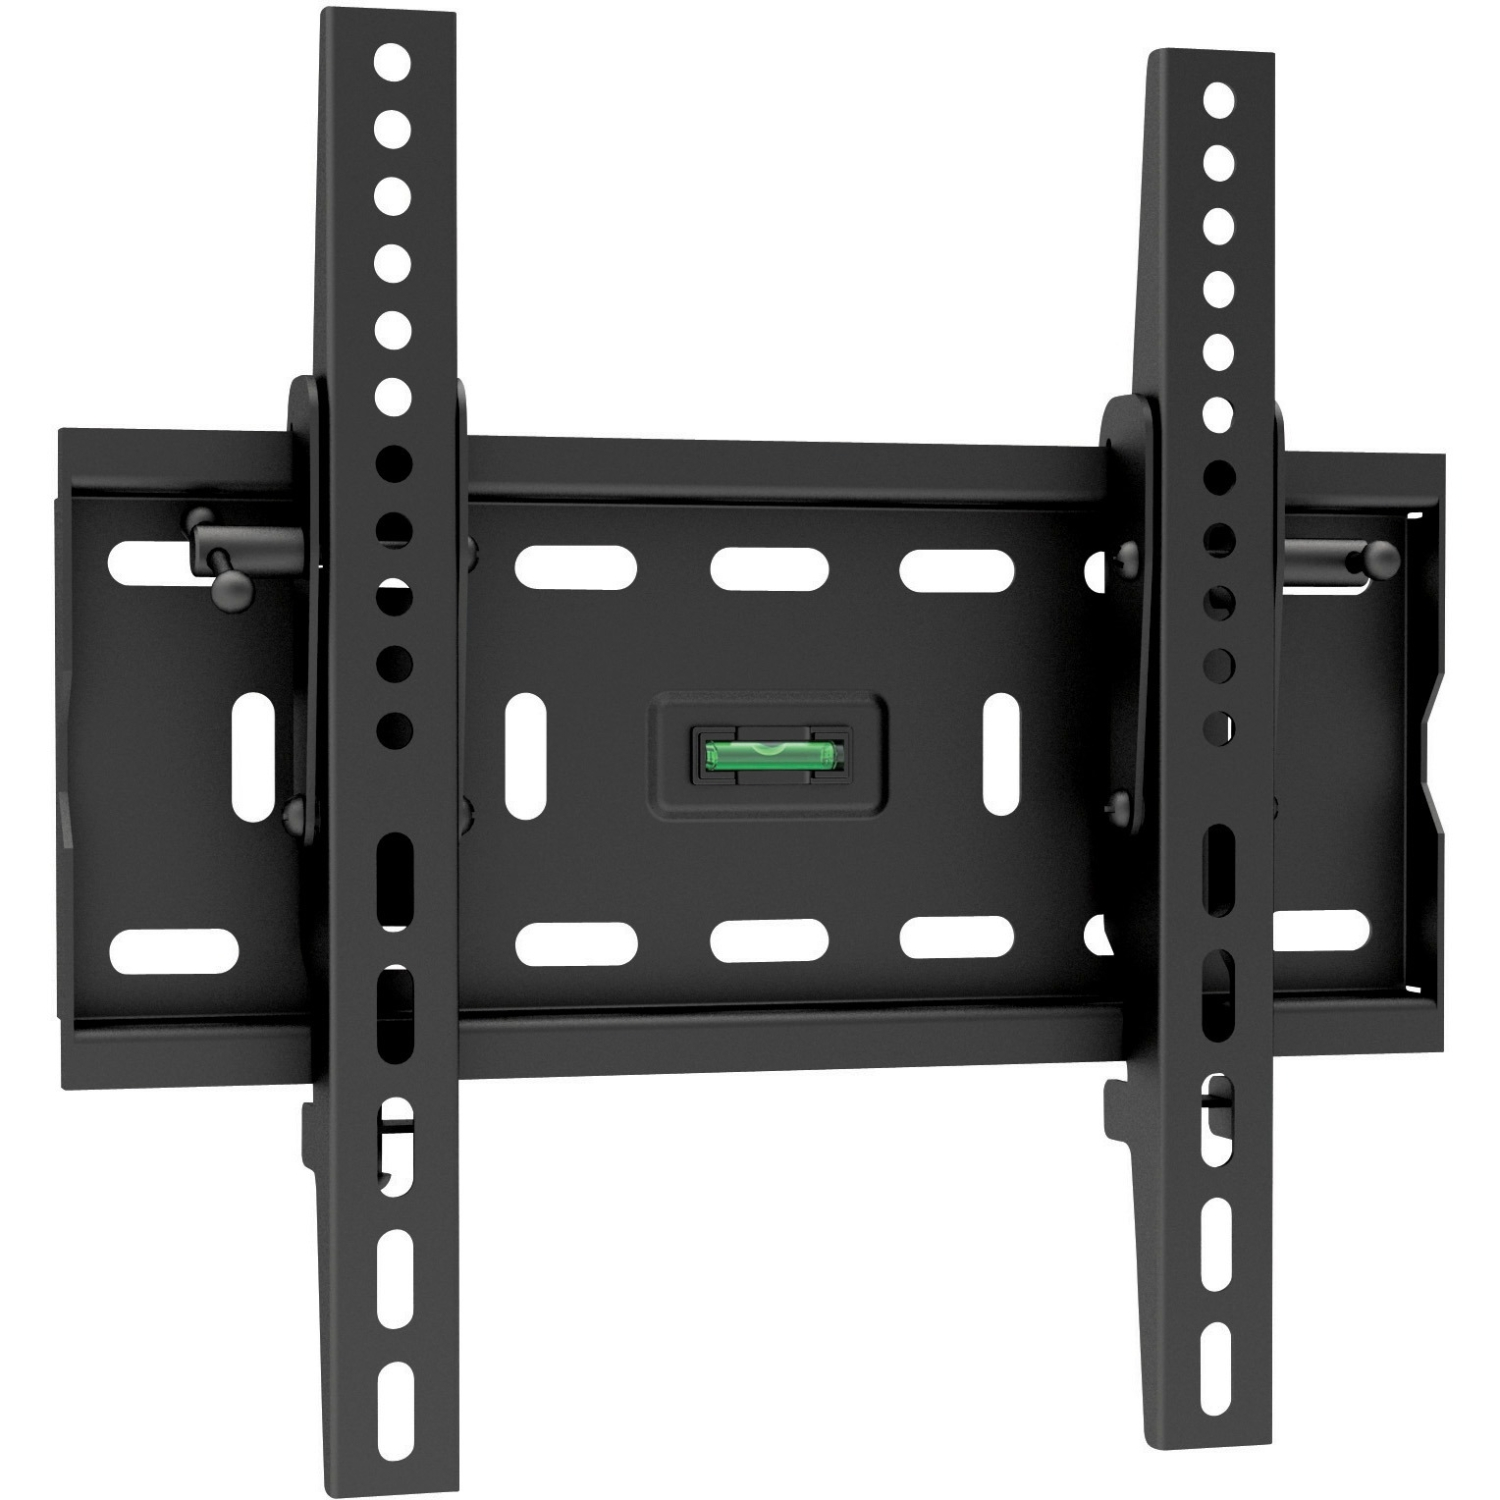 "Ergotech Wall Mount for TV - 55"" Screen Support - 165 lb Load (Refurbished)"